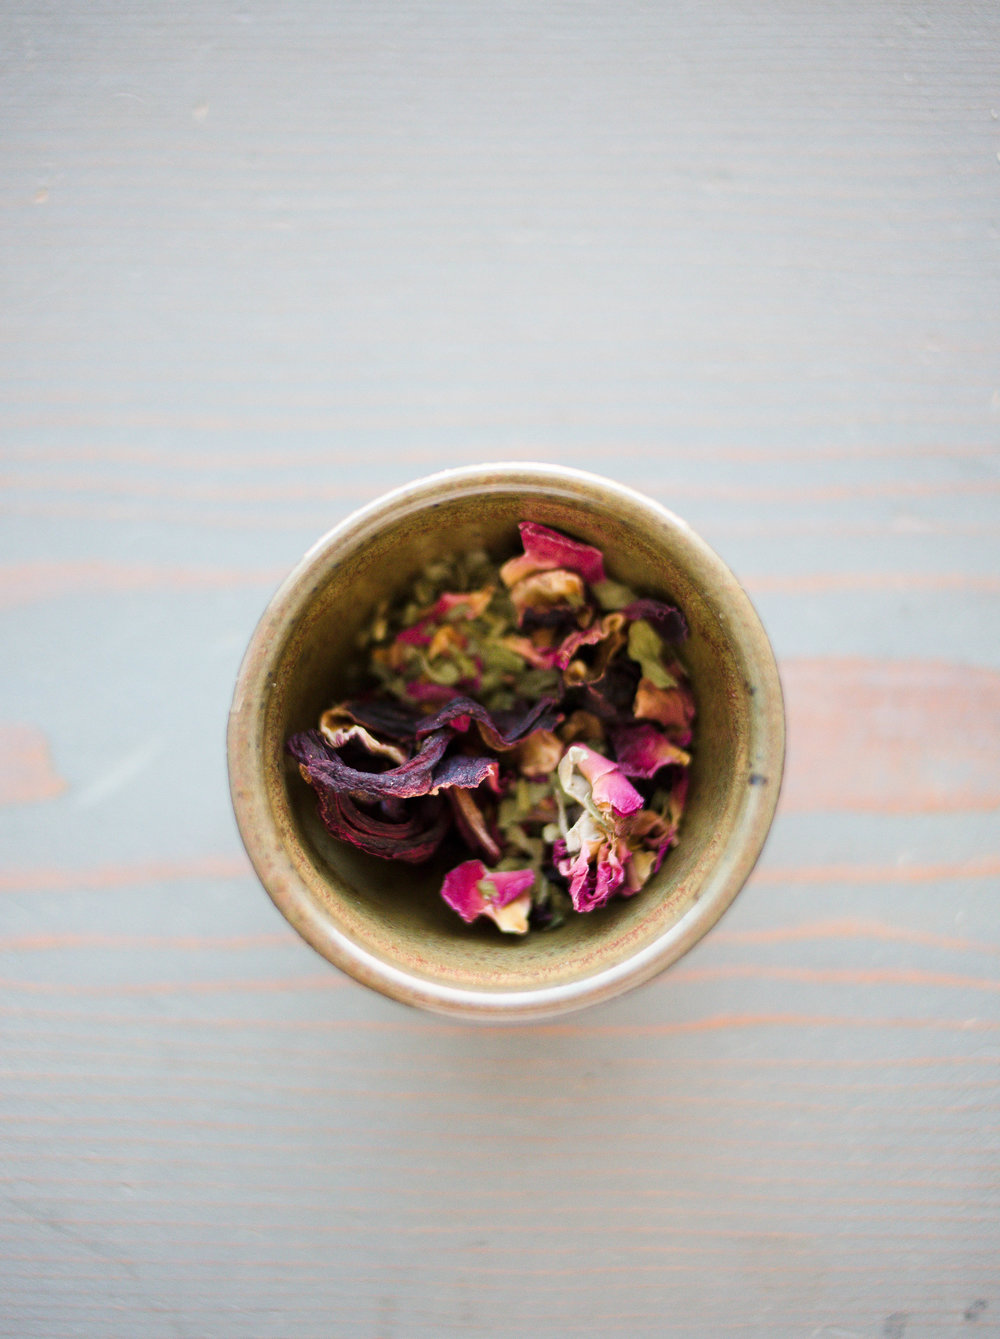 Homemade tea blend: spearmint leaves, rose petals, hibiscus petals